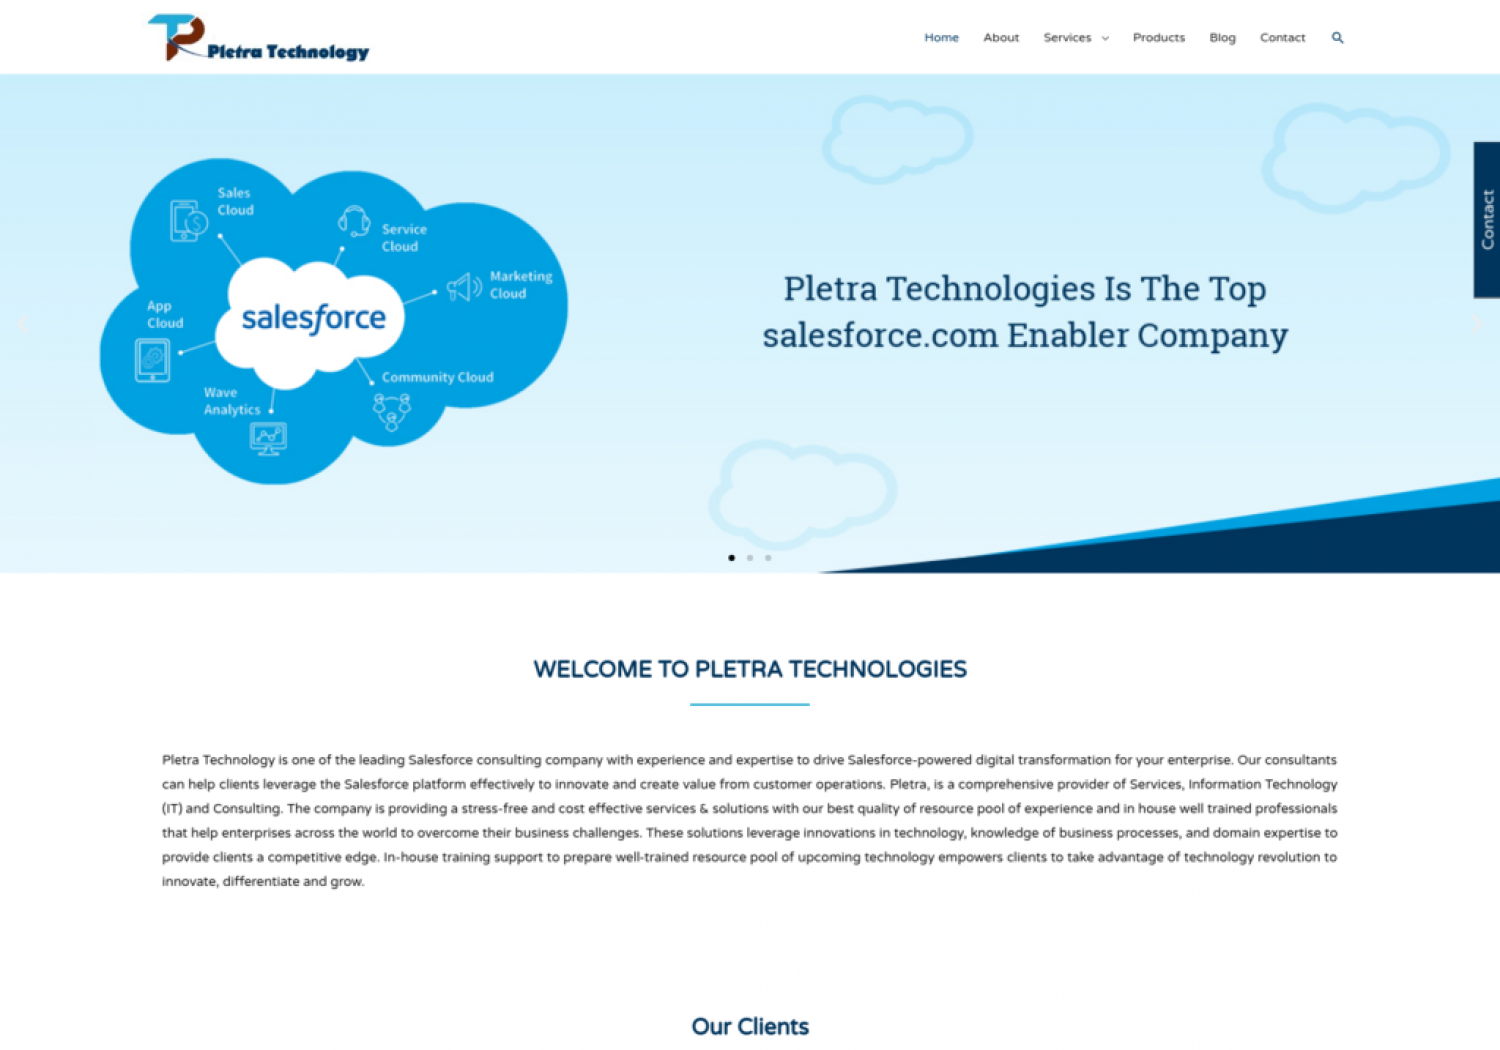 WELCOME TO PLETRA TECHNOLOGIES Infographic